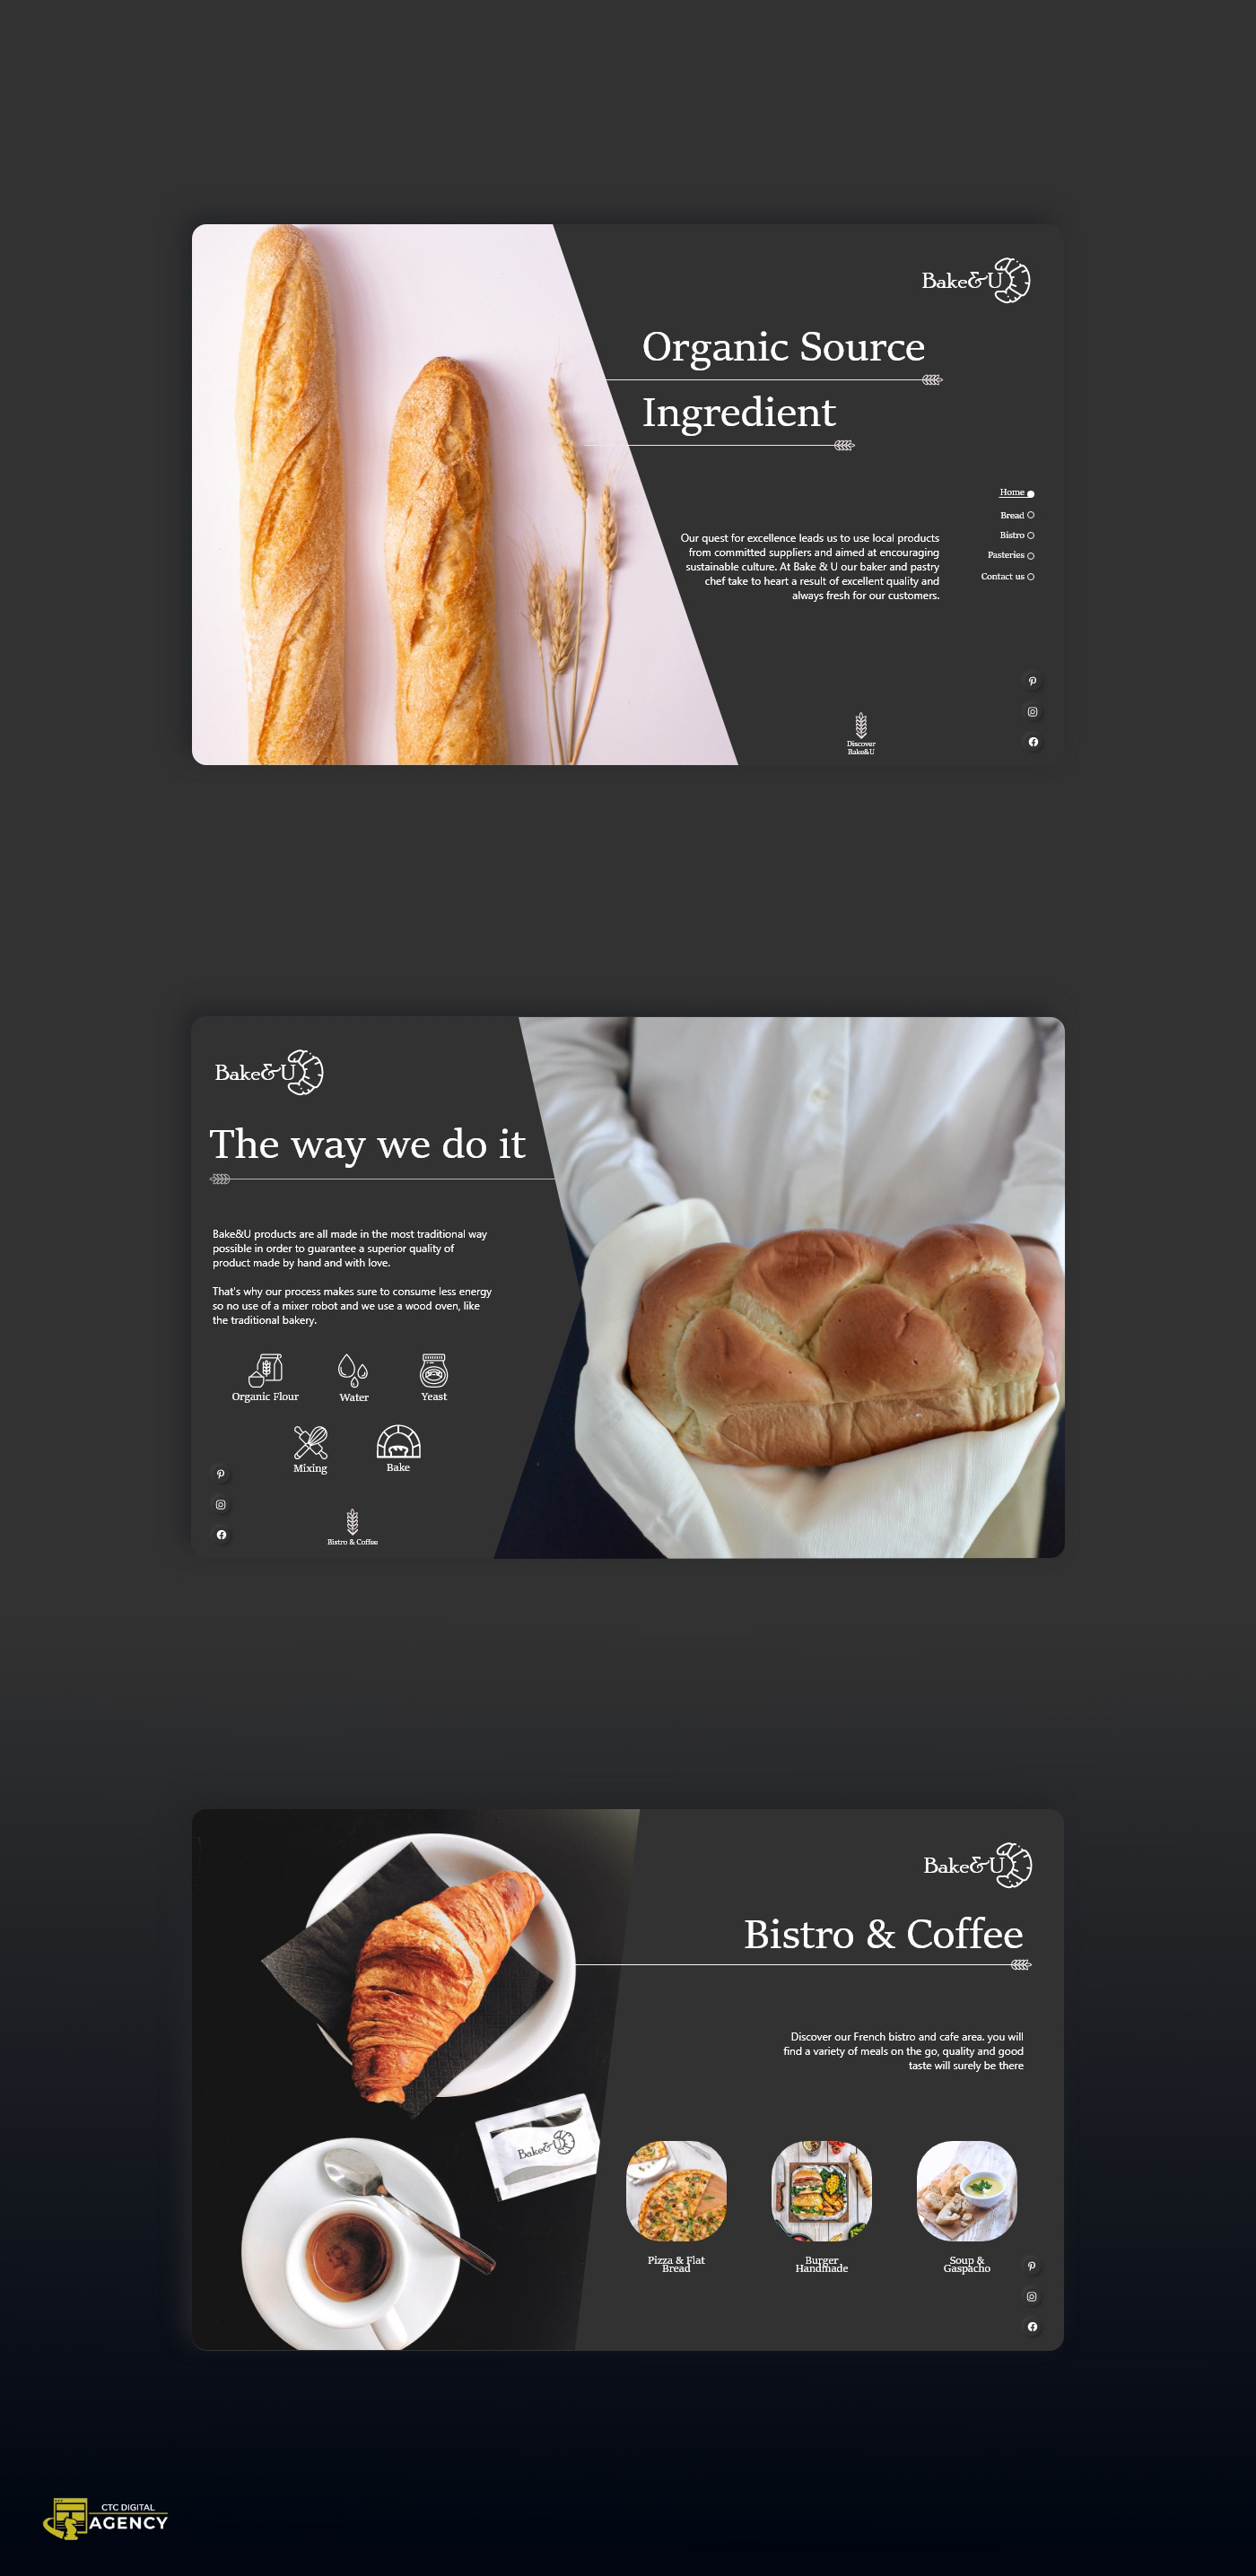 This is a website design for the bakery Bake&U, a bakery-pastry shop in creation in Wilmington.